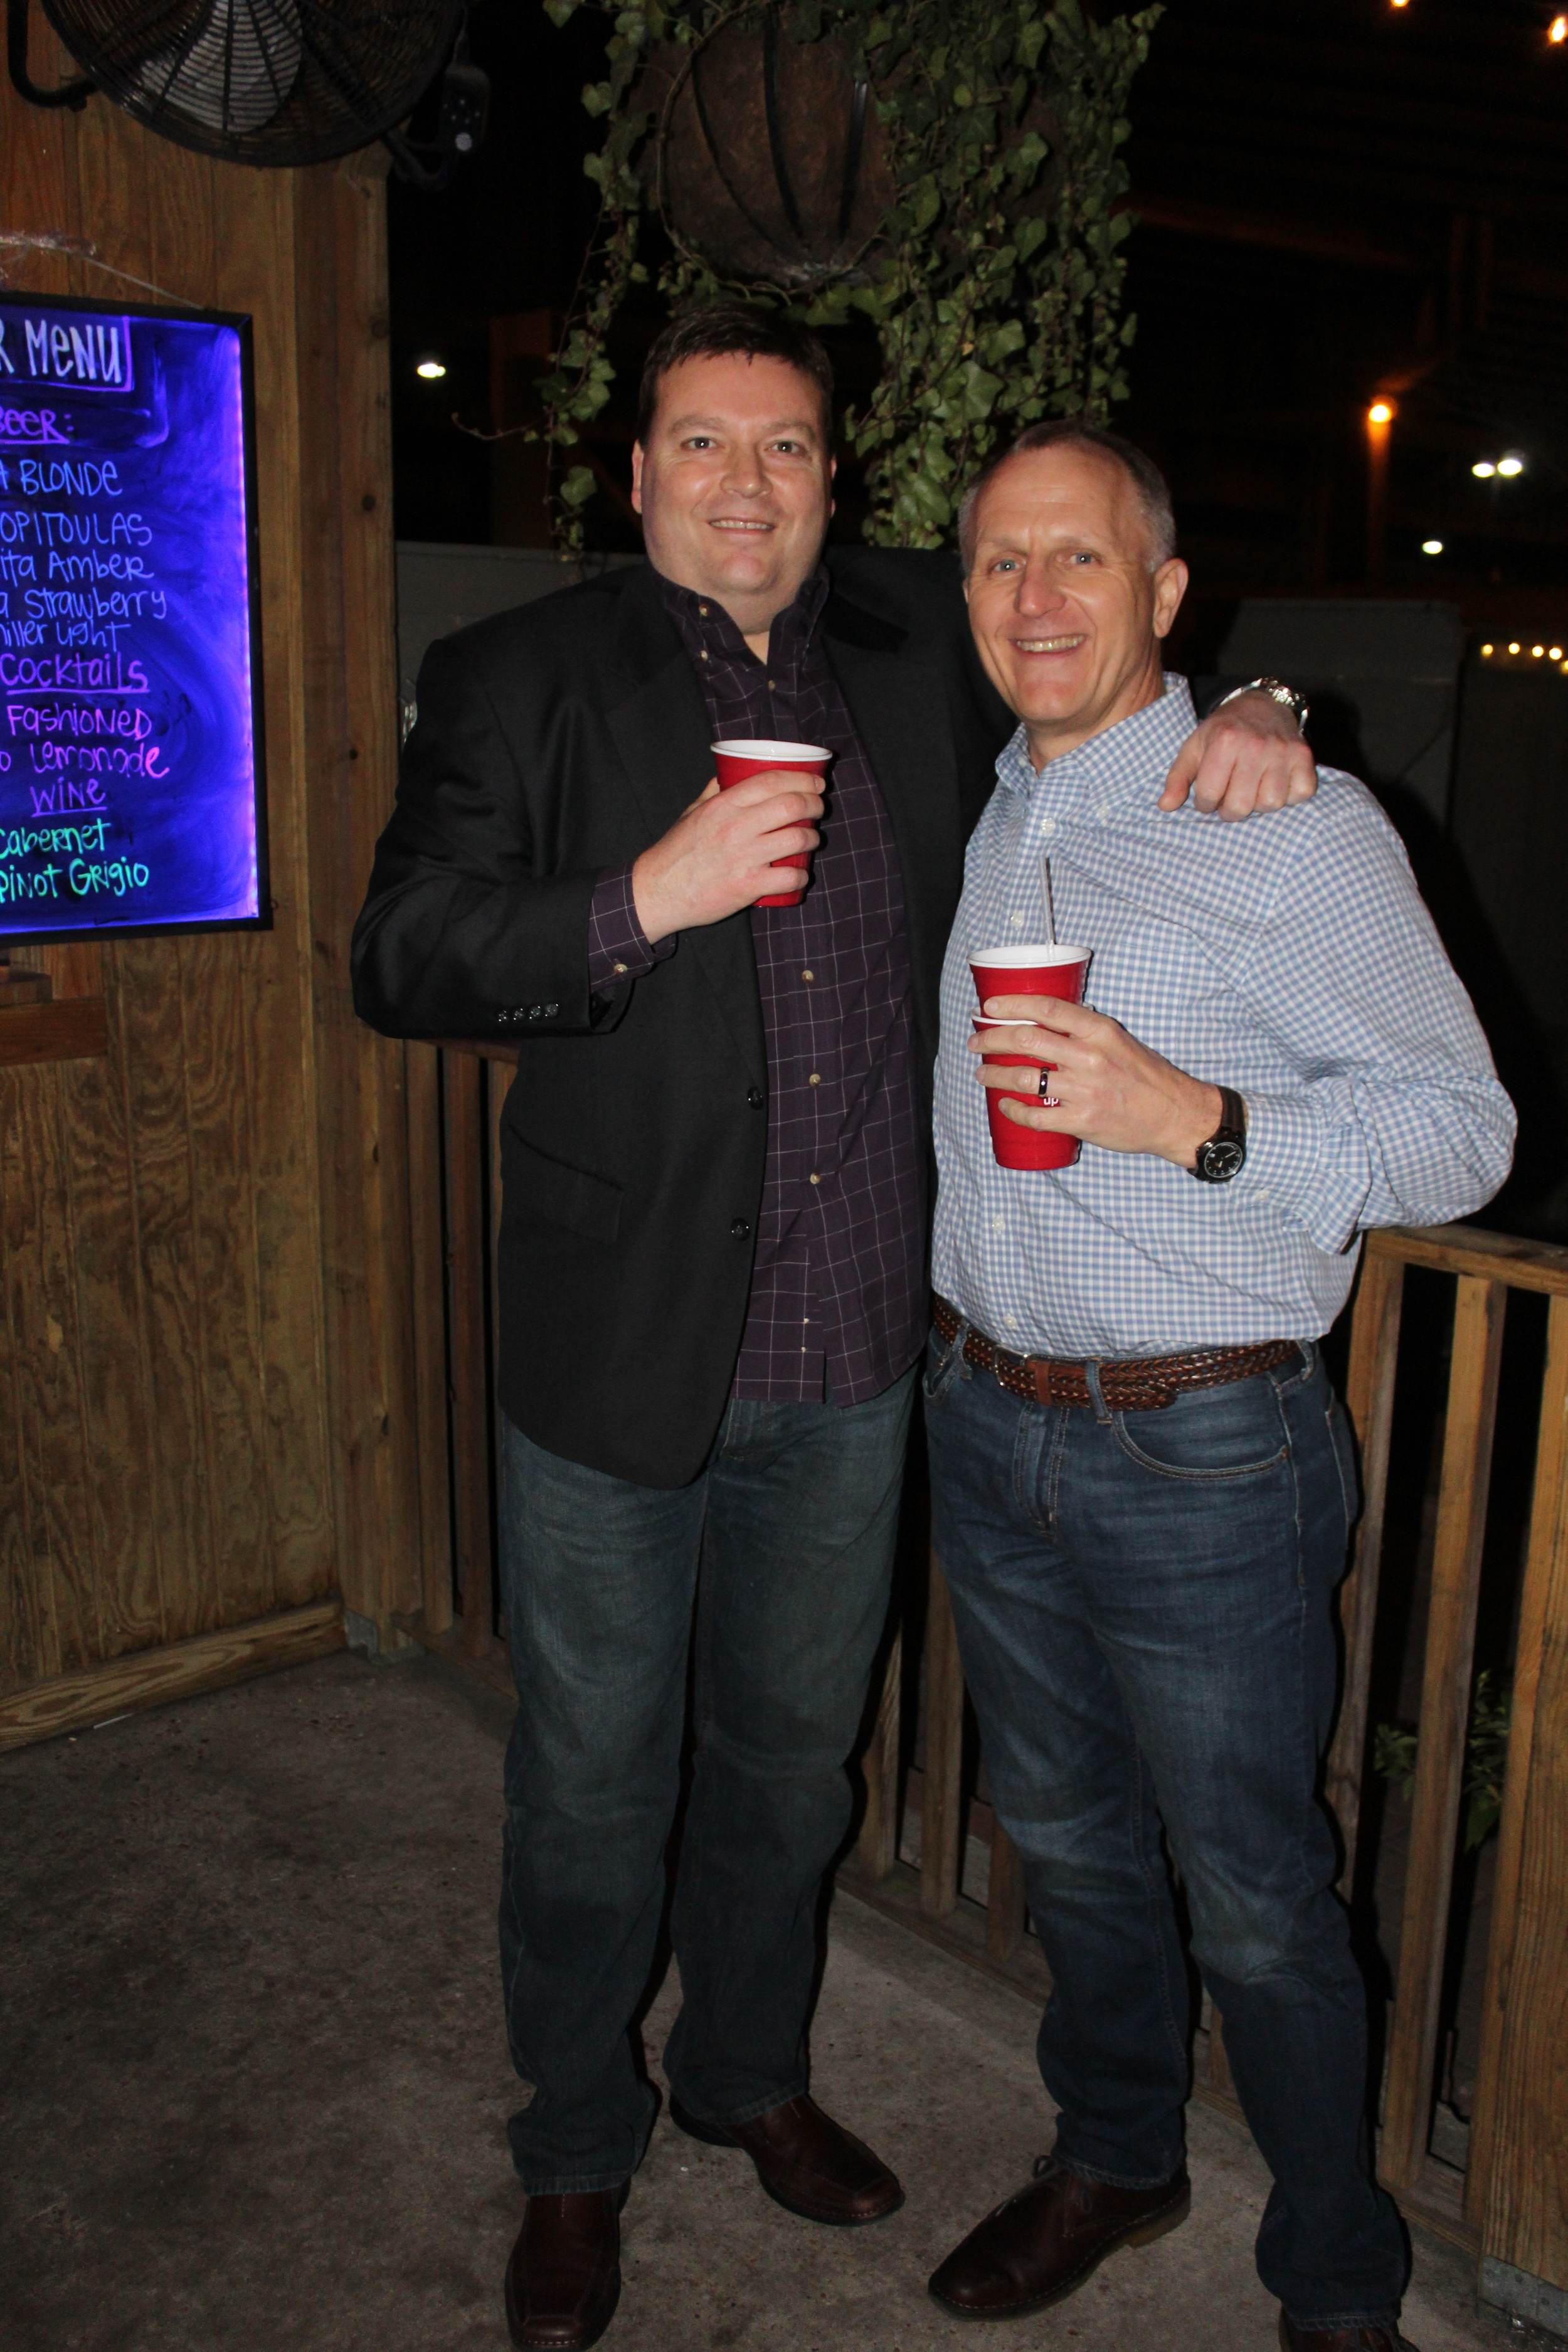 Updater's Michael Clarner with friend and partner,Allan Lamar, of EWS Group